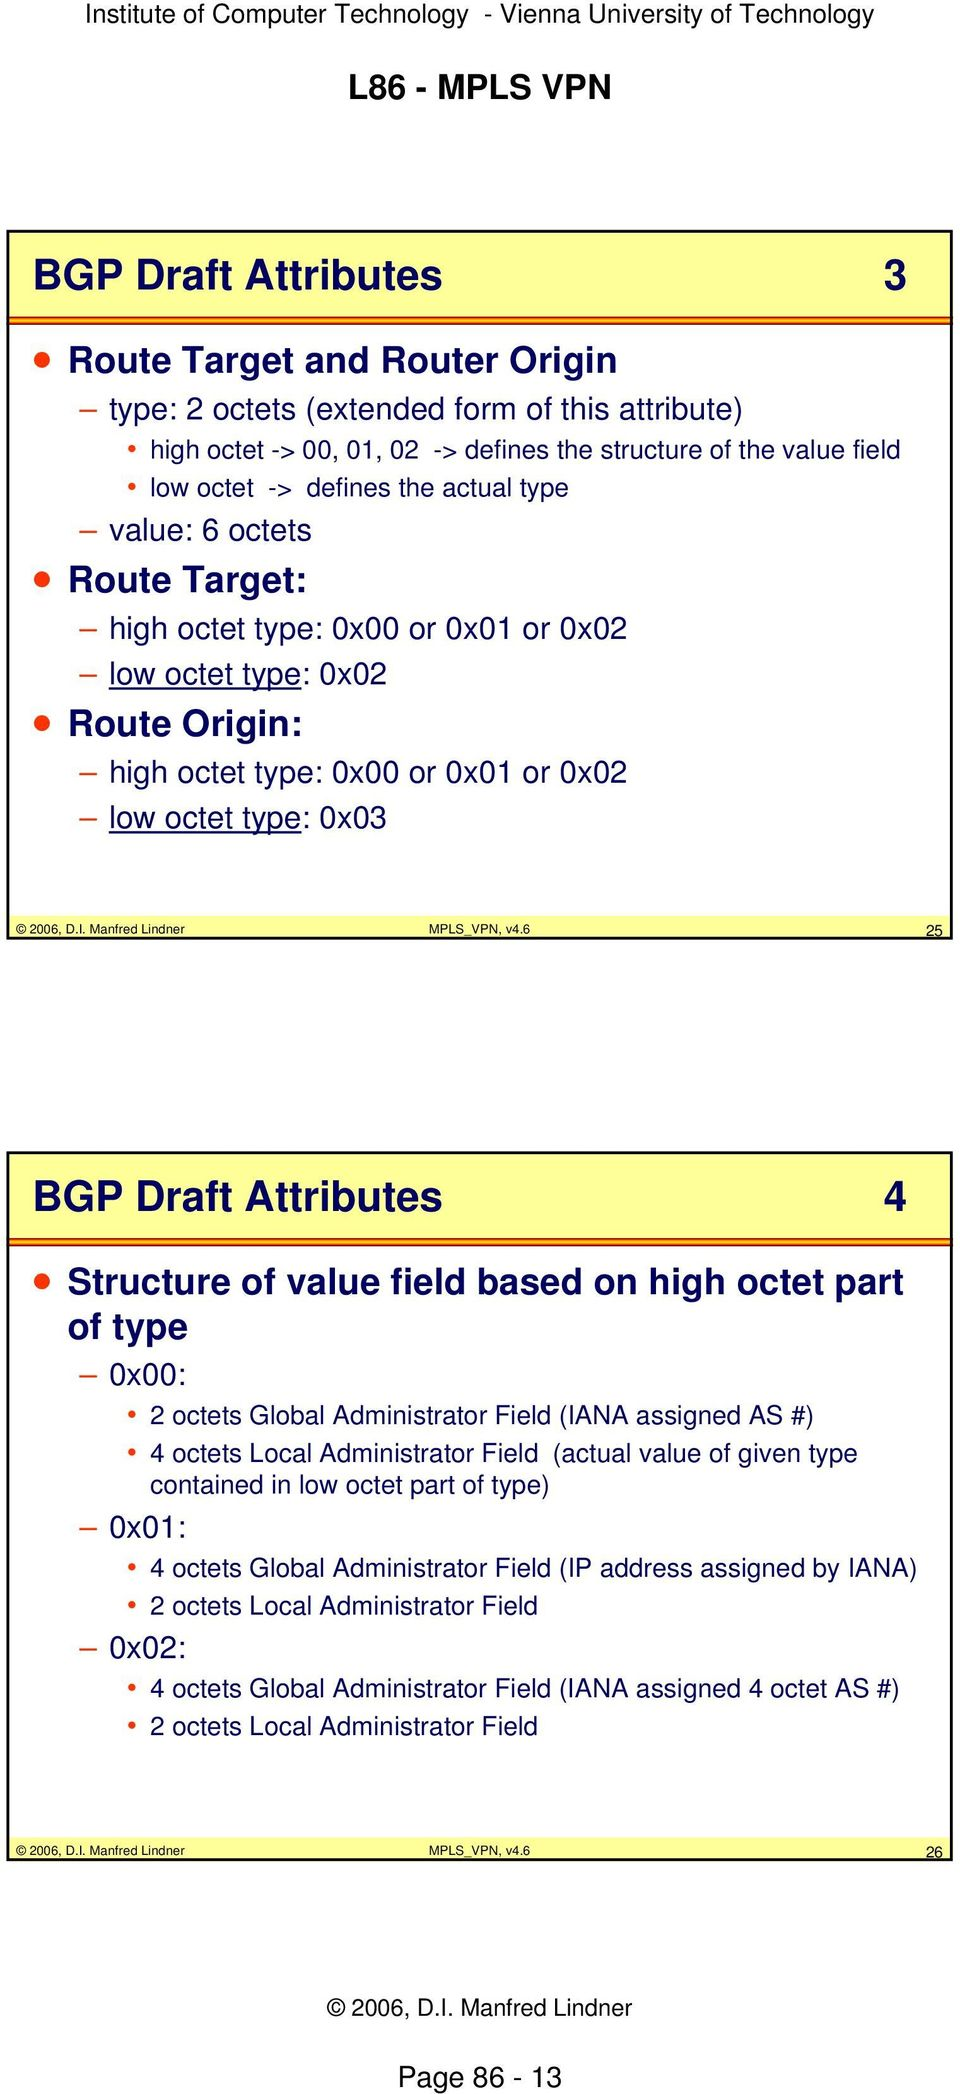 6 25 BGP Draft Attributes 4 Structure of value field based on high octet part of type 0x00: 2 octets Global Administrator Field (IANA assigned AS #) 4 octets Local Administrator Field (actual value